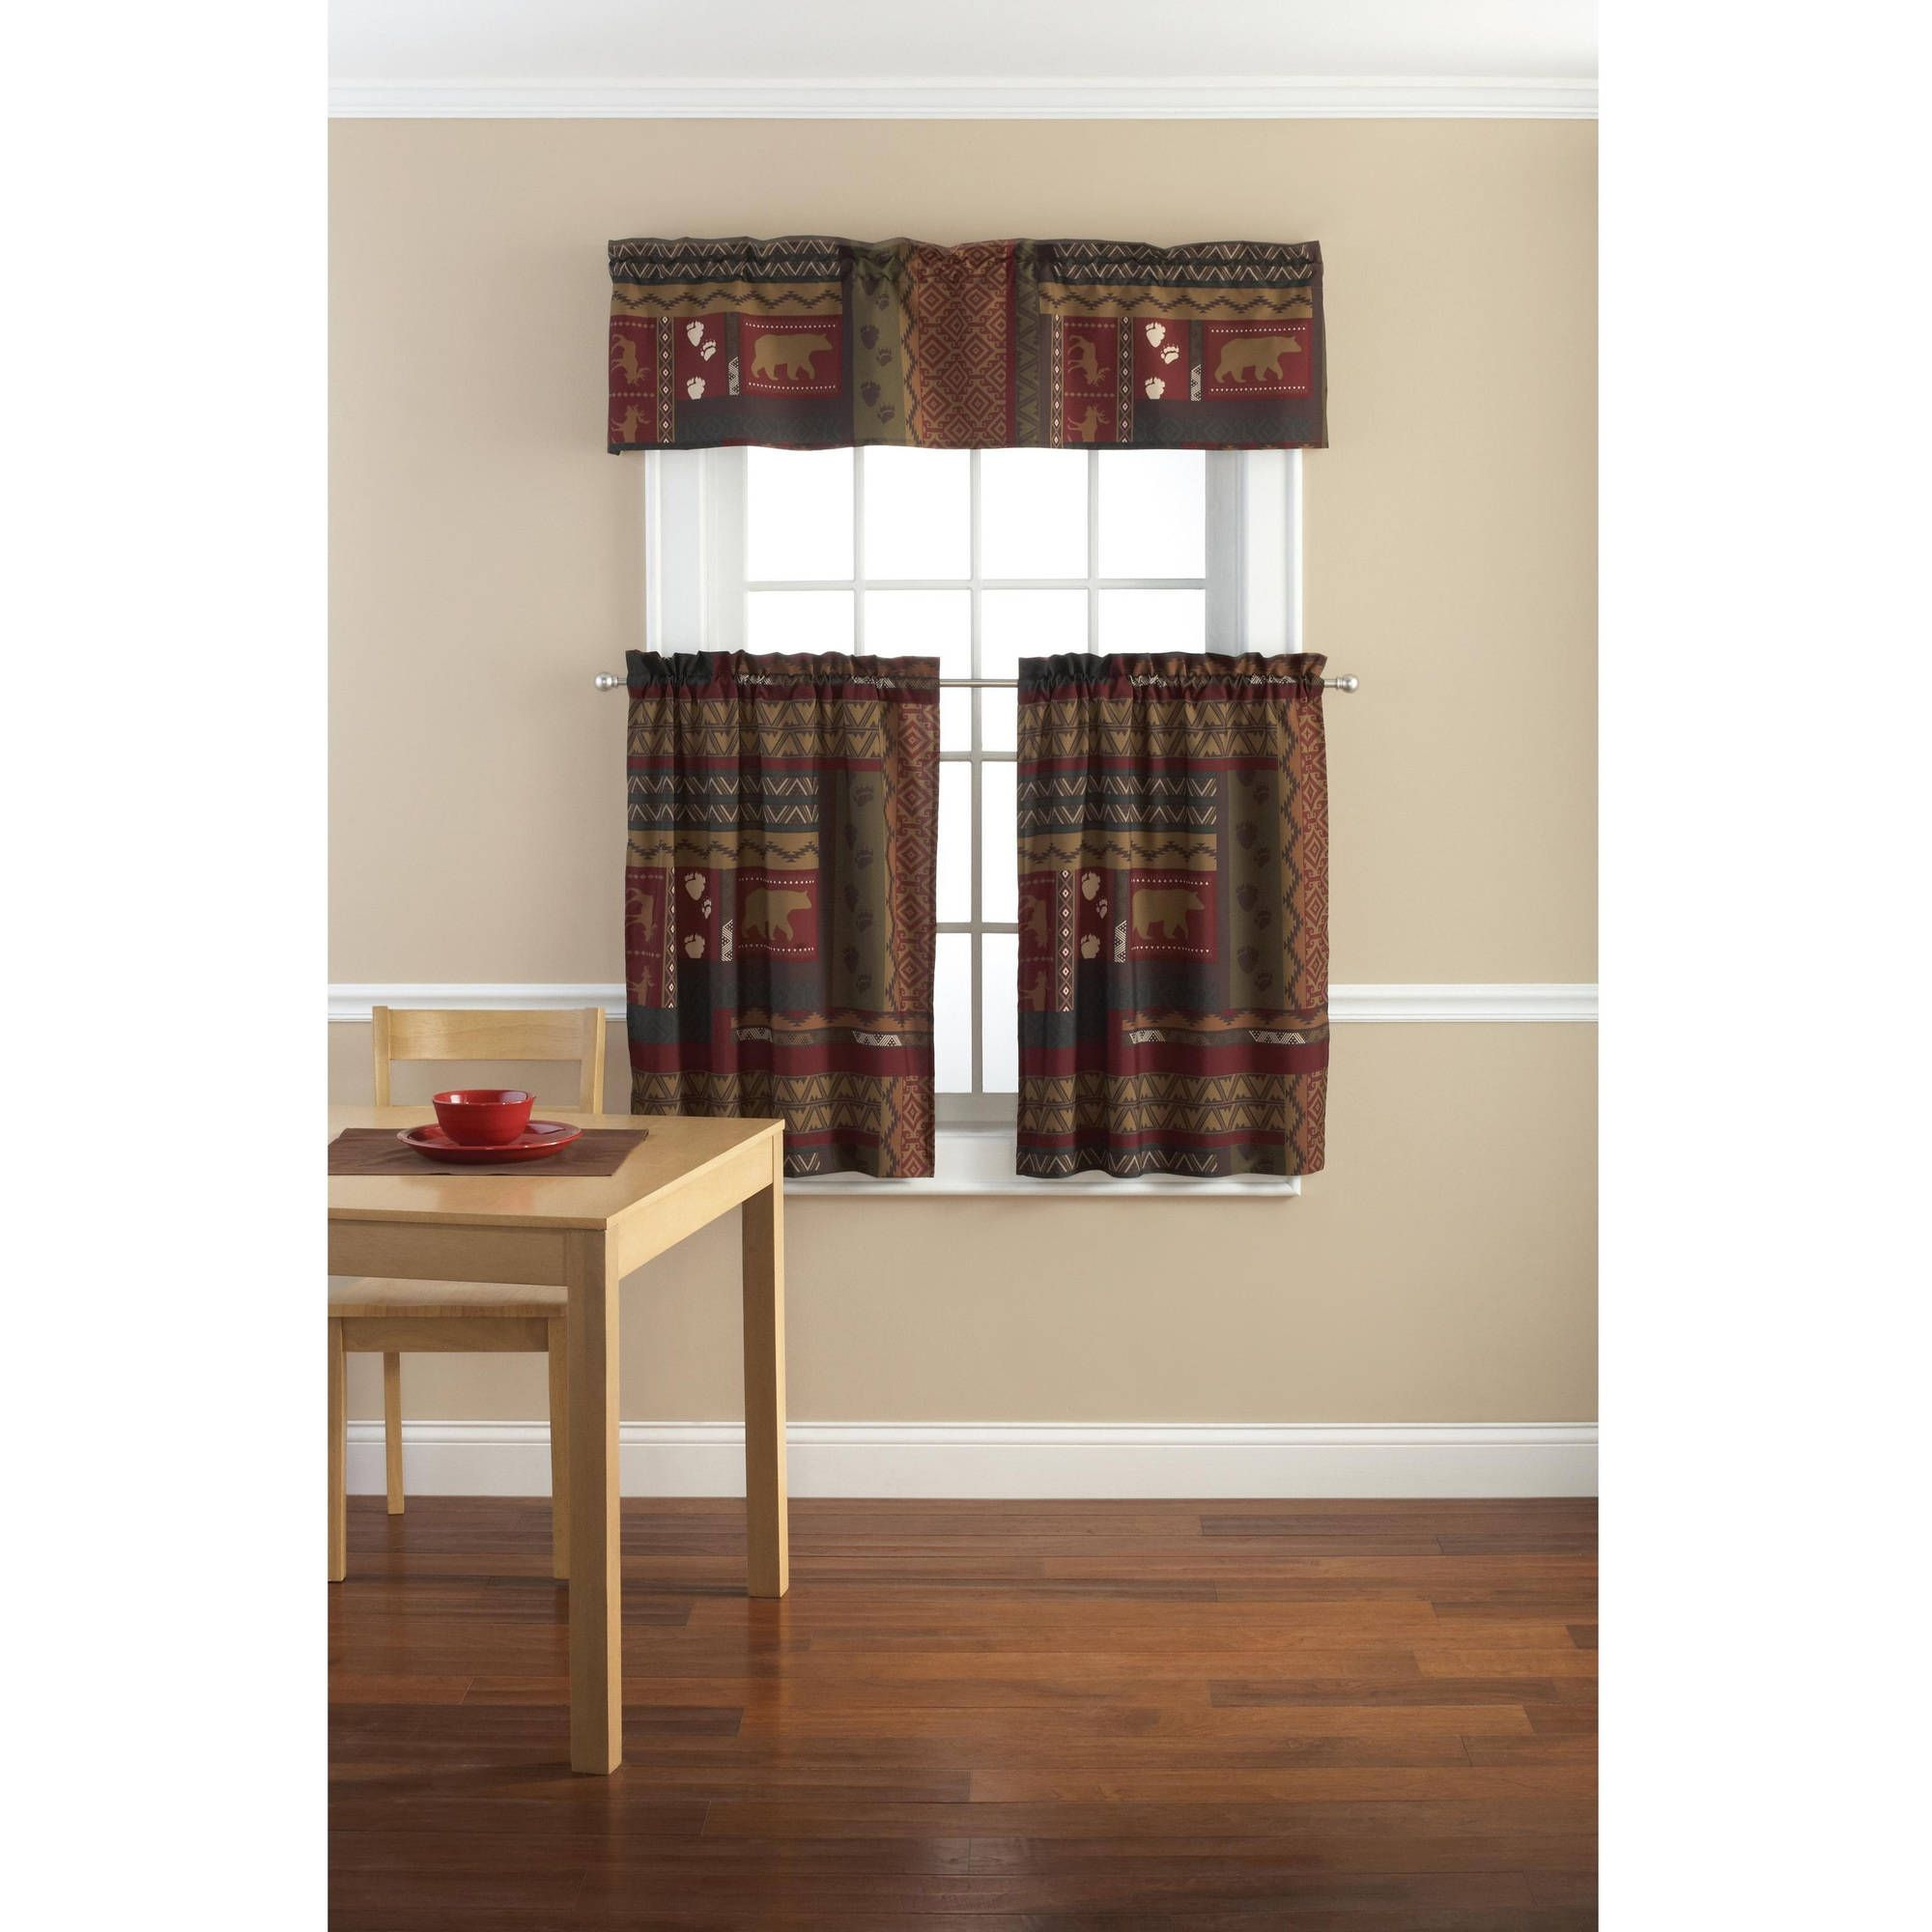 Outdoor themed window curtains realtagfo pinterest